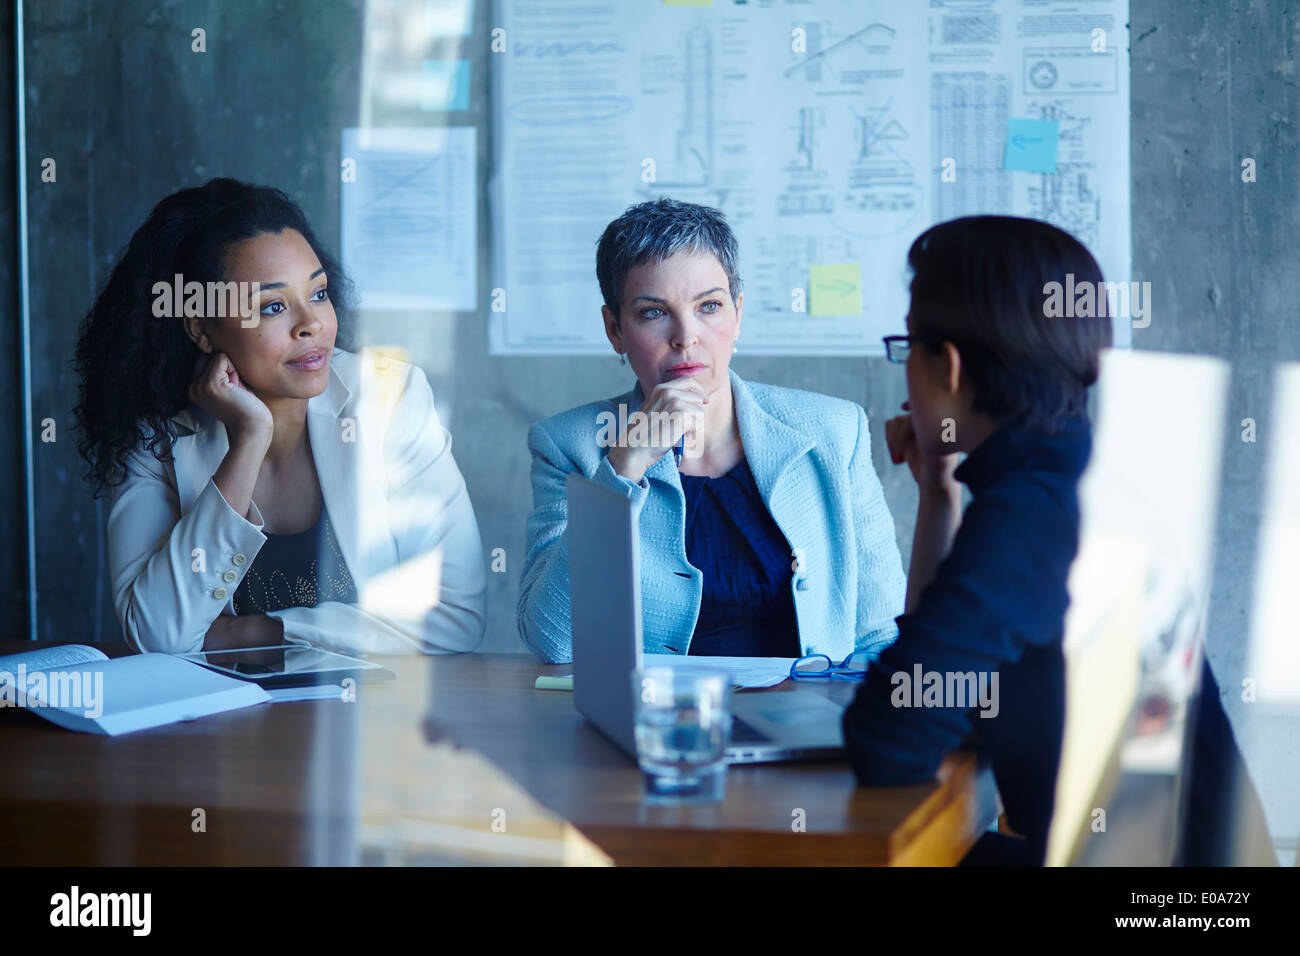 Three businesswomen discussing ideas in boardroom Stock Photo